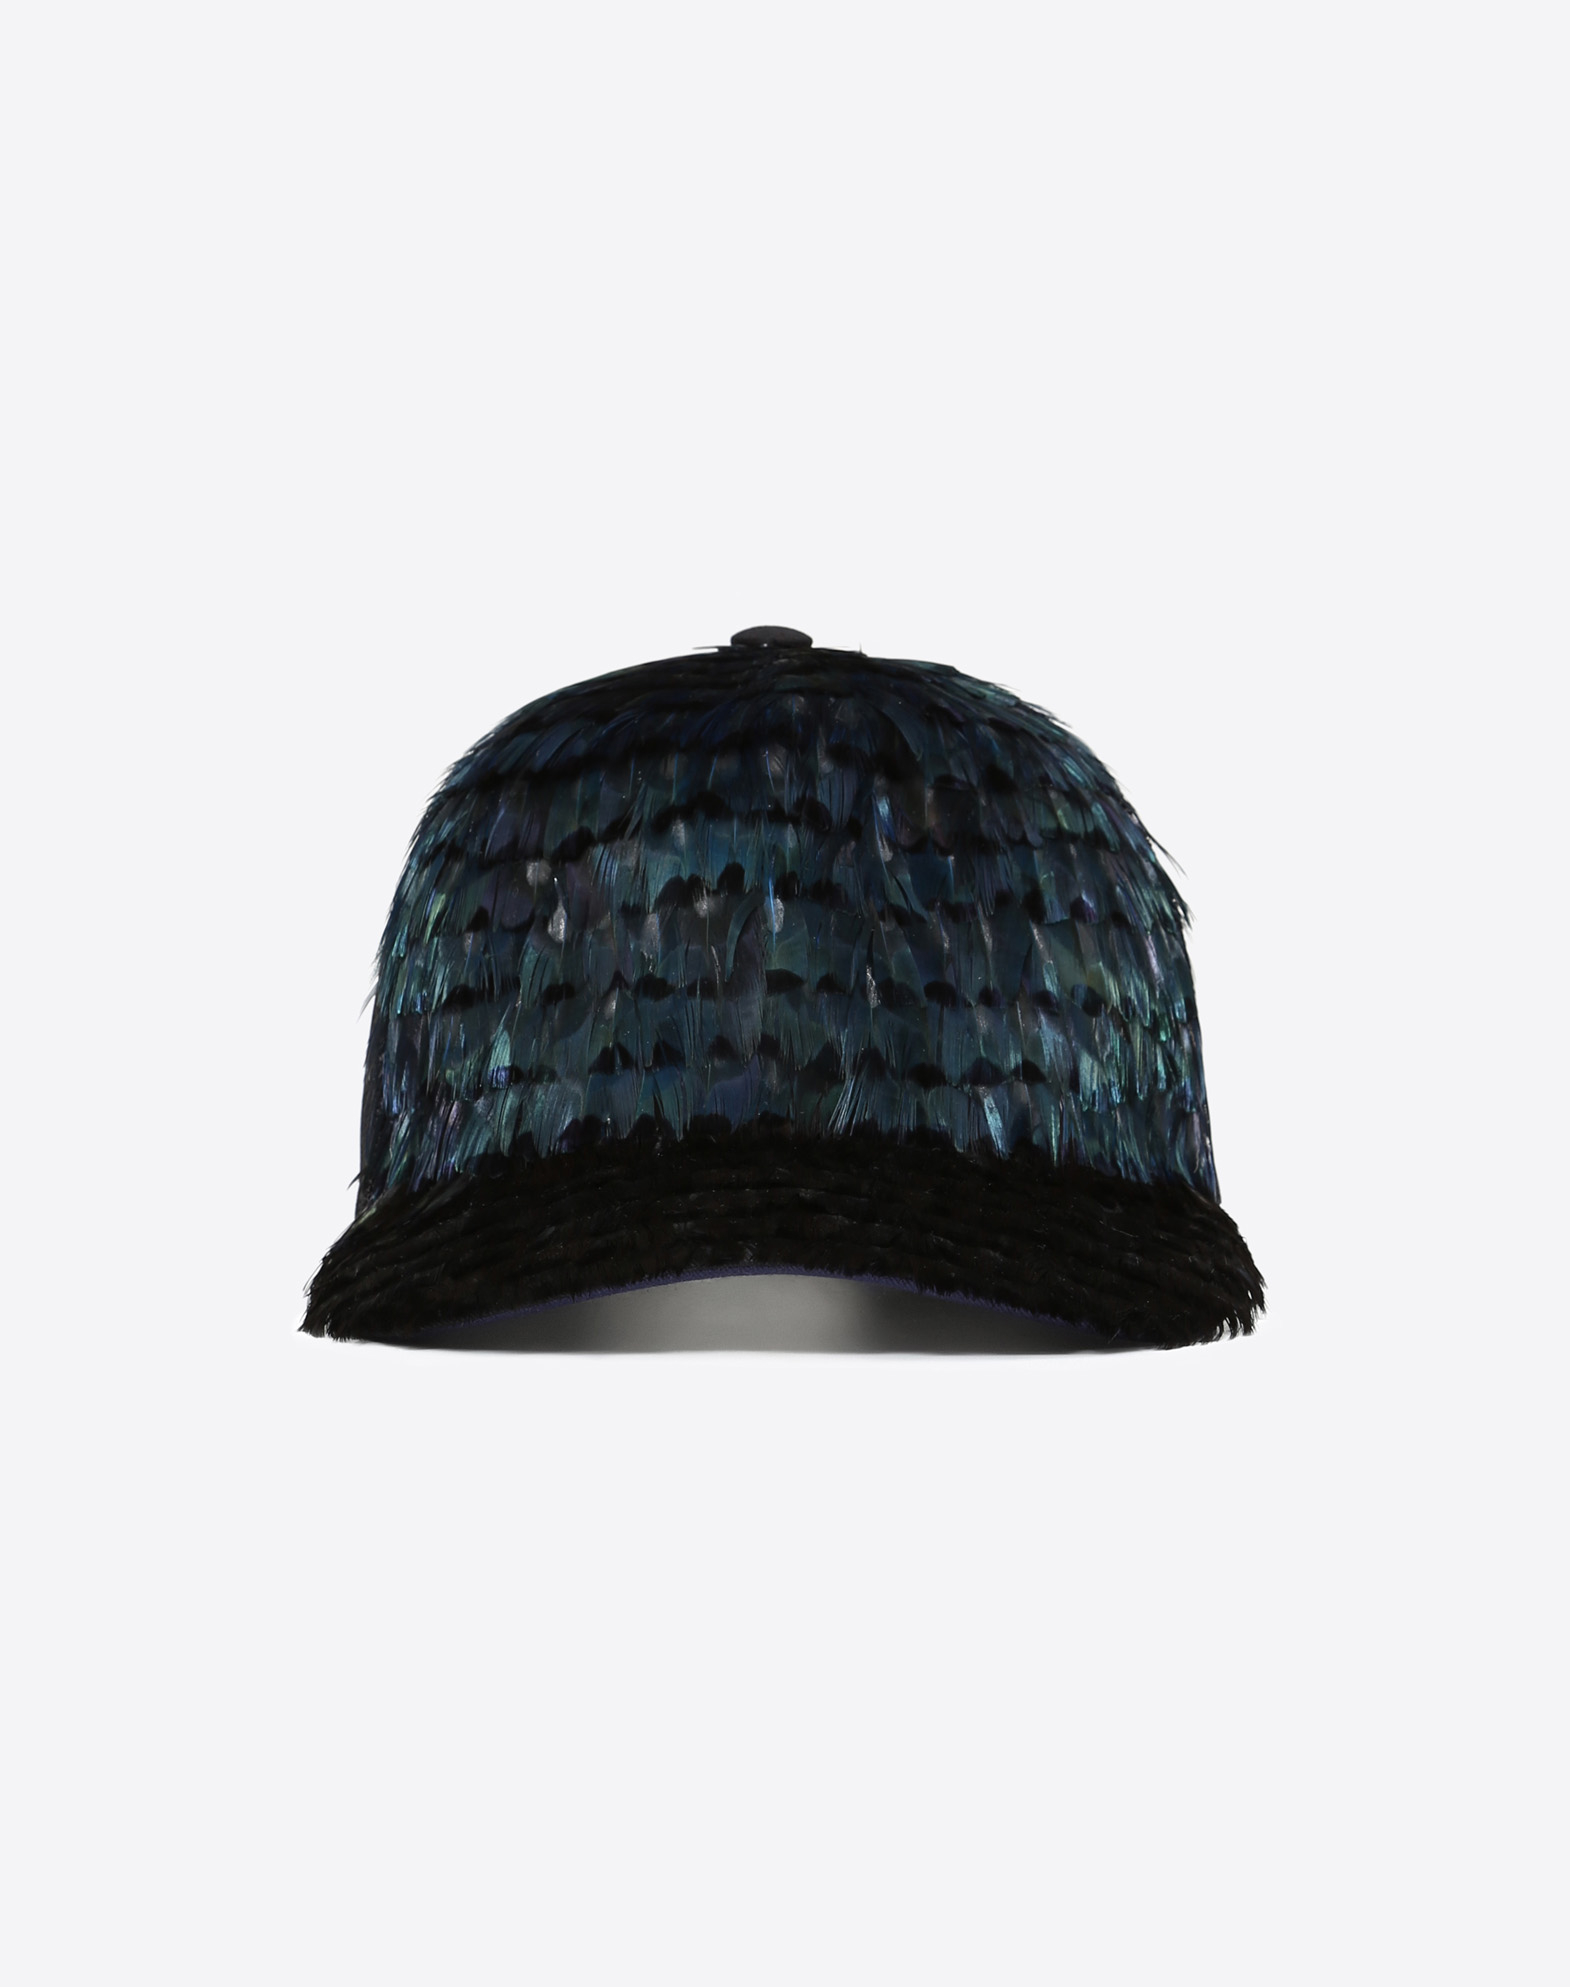 Baseball Cap With Feather Details